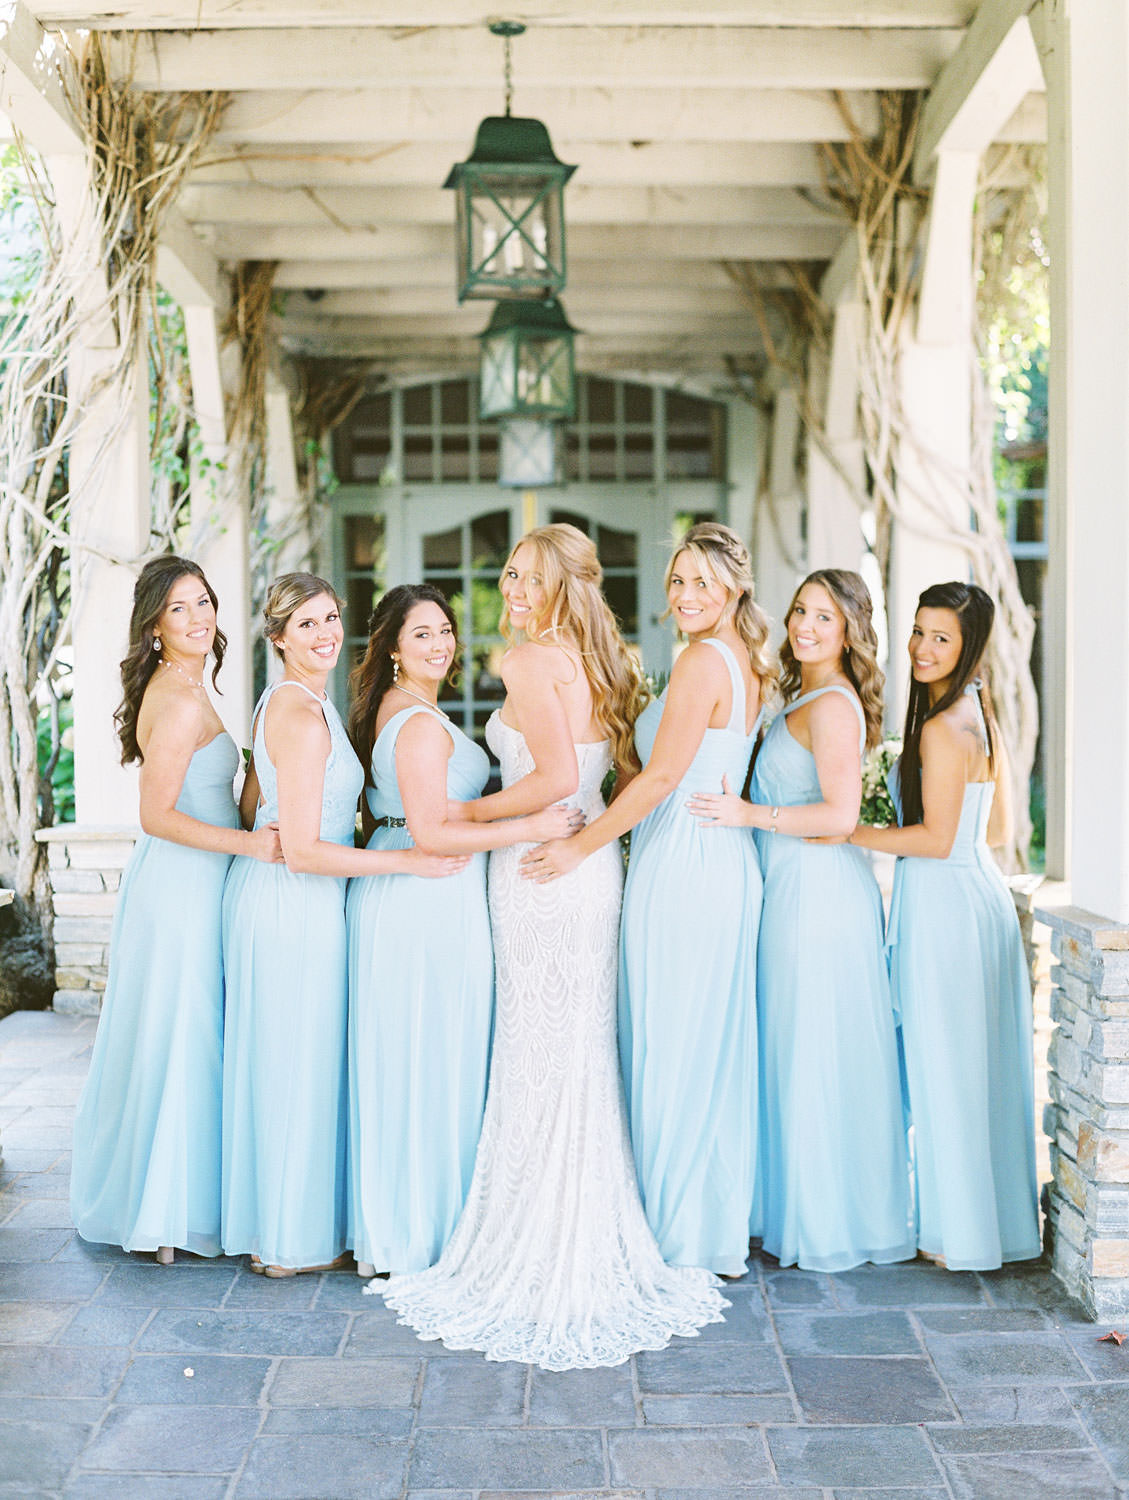 Bride surrounded by bridesmaids wearing pale blue gowns shot on film, Del Mar Country Club Wedding by Cavin Elizabeth Photography